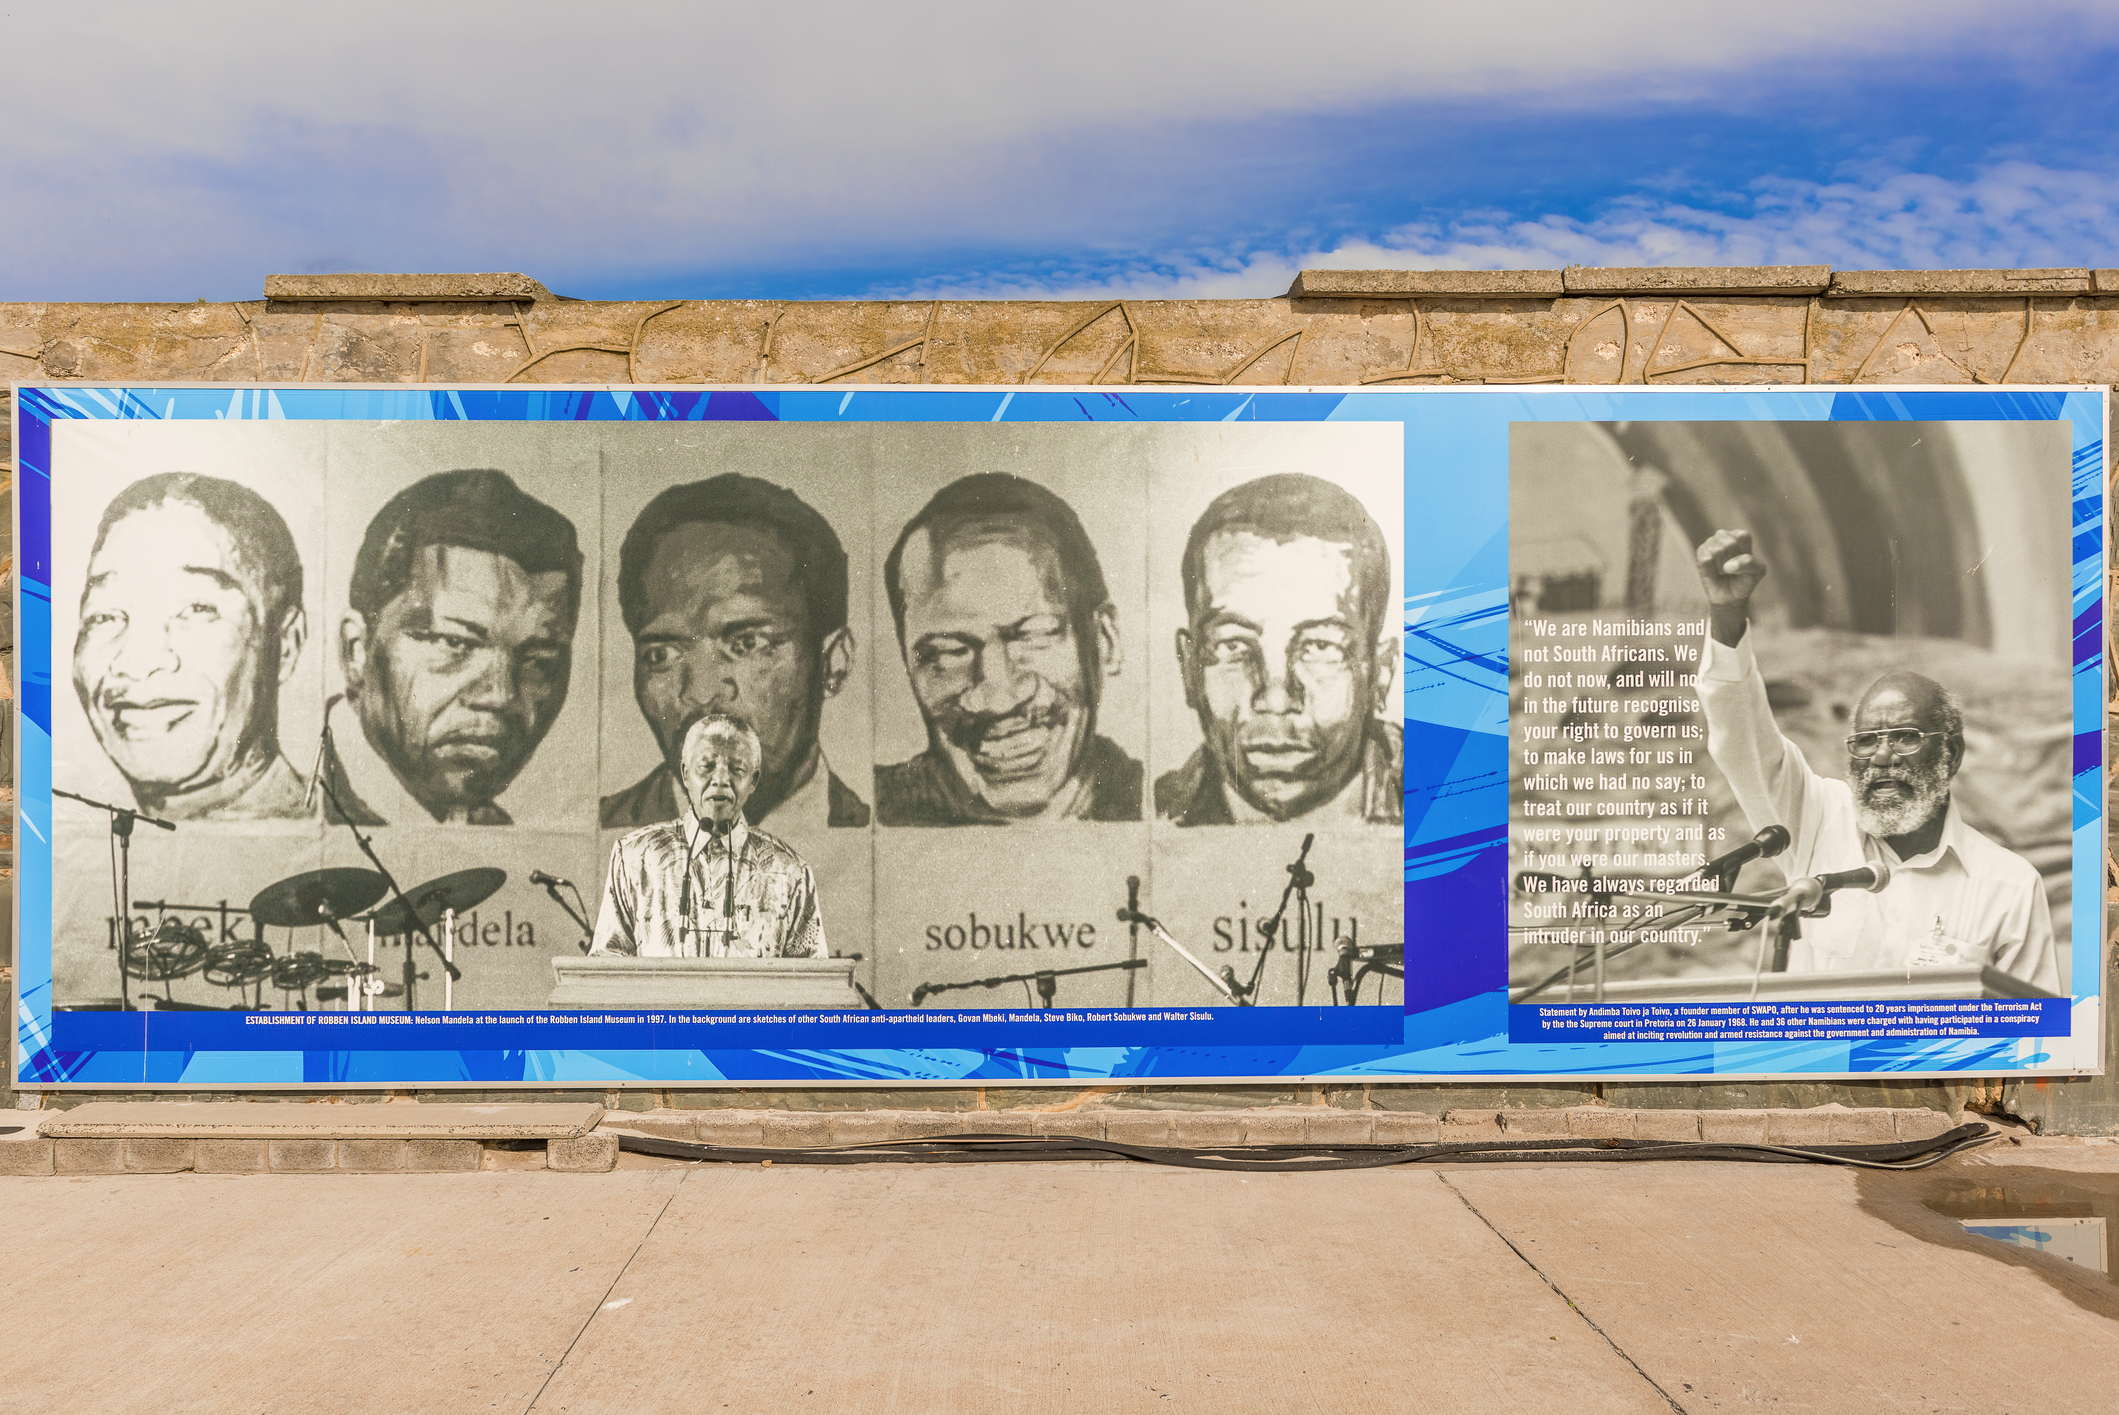 Cape Town, South Africa - May 14, 2015: Banner on Robben Island Prison wall where Nelson Mandela was imprisoned, now a museum, Cape Town, South Africa.